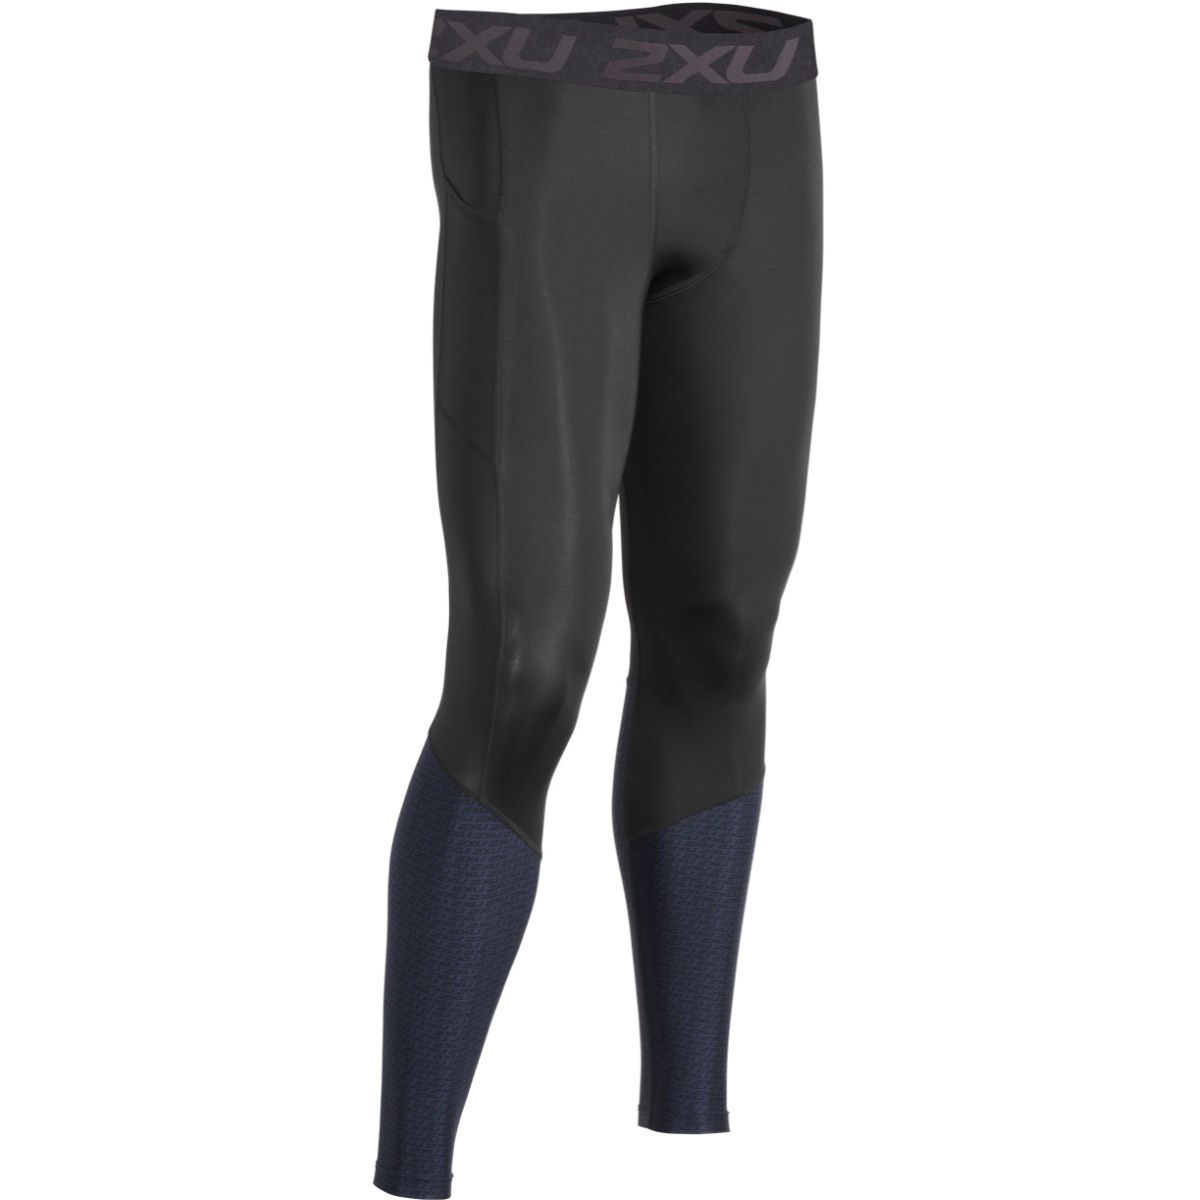 2Xu 2XU Accelerate Compression Tights with Back Storage   Compression Tights